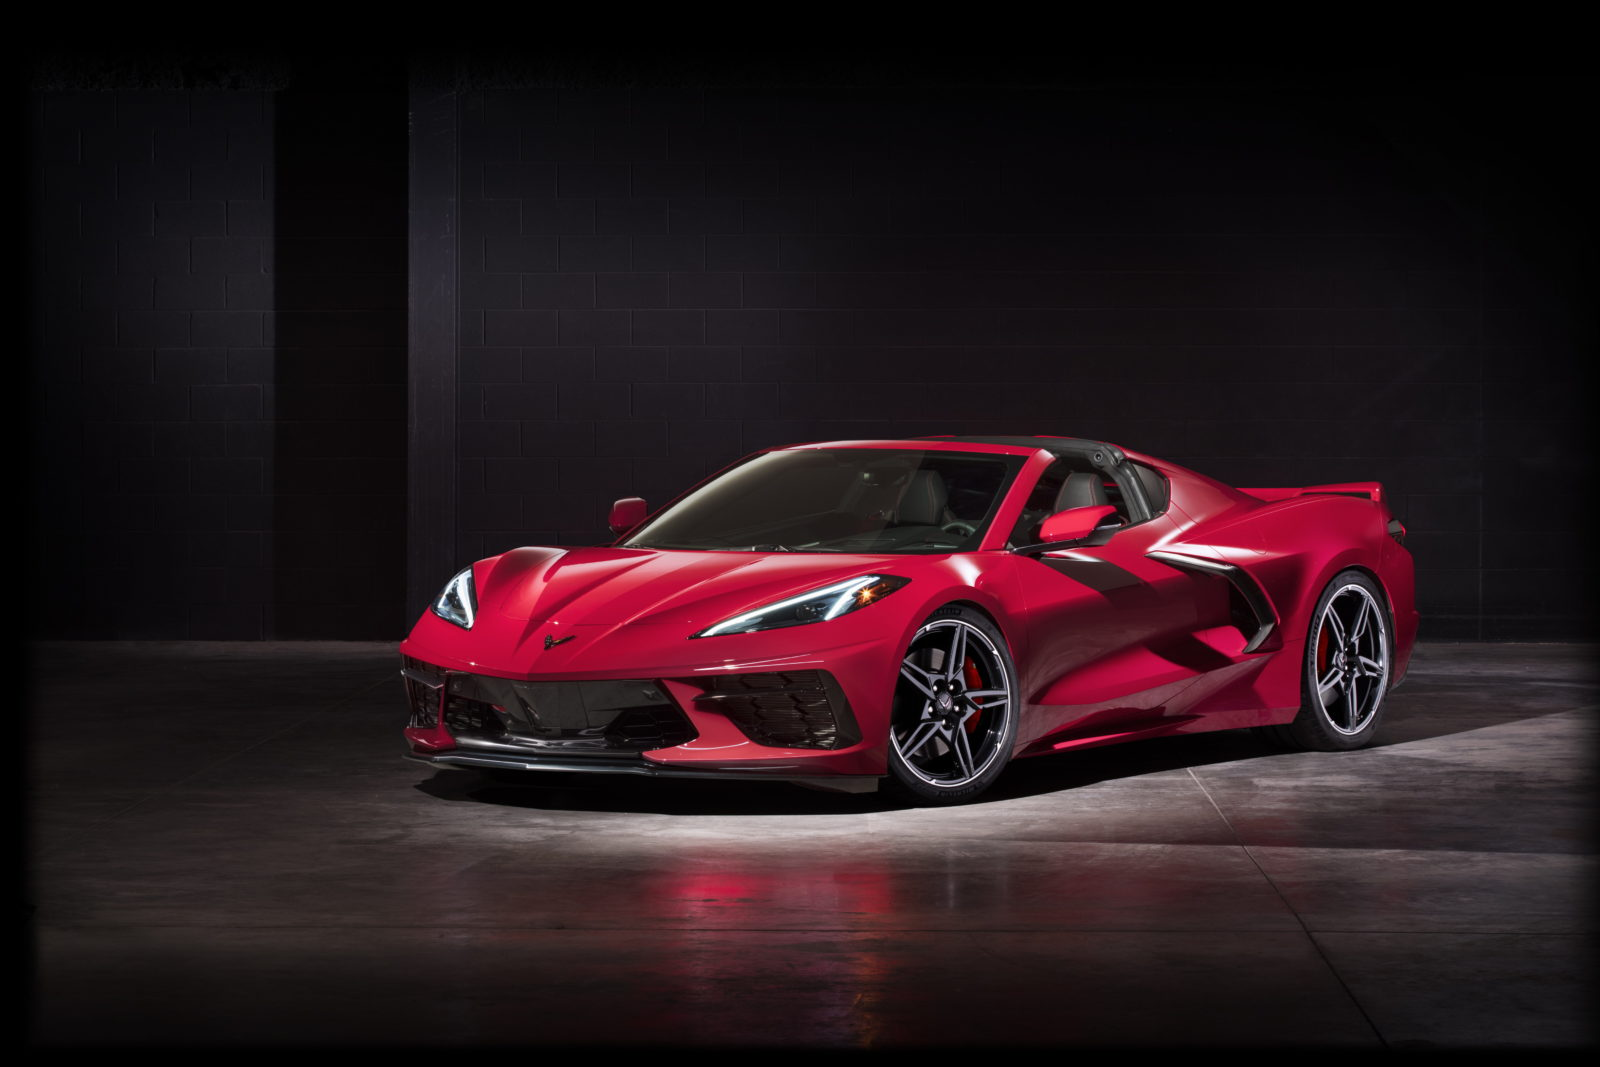 Chevrolet Corvette Stingray Photo Review